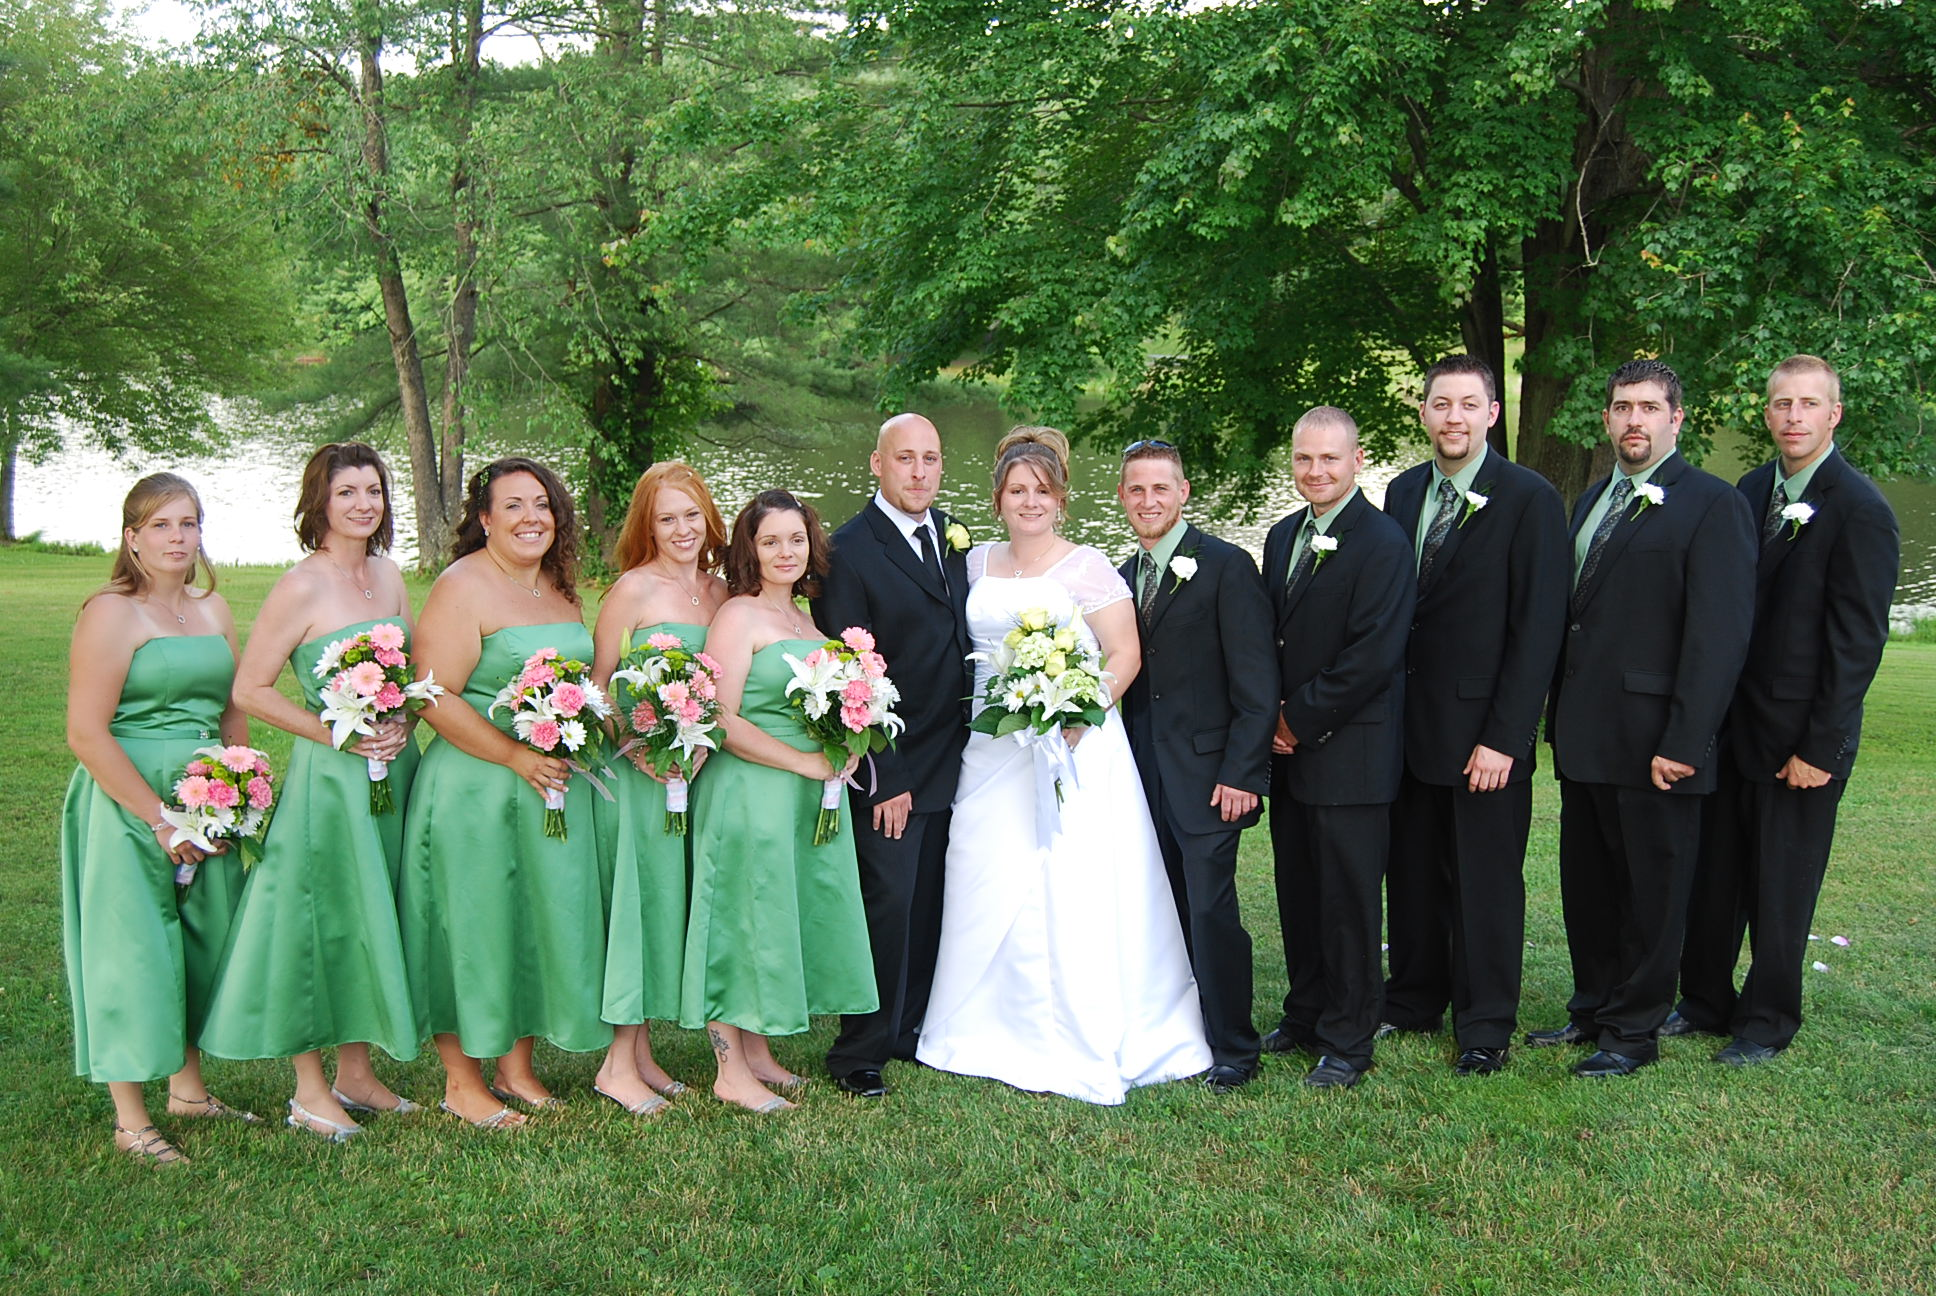 Irish Theme Wedding Ideas Traditions Song List Albany Dj Sweet 16 Reunion Party Mitzvah Of Troy Schenectady Saratoga